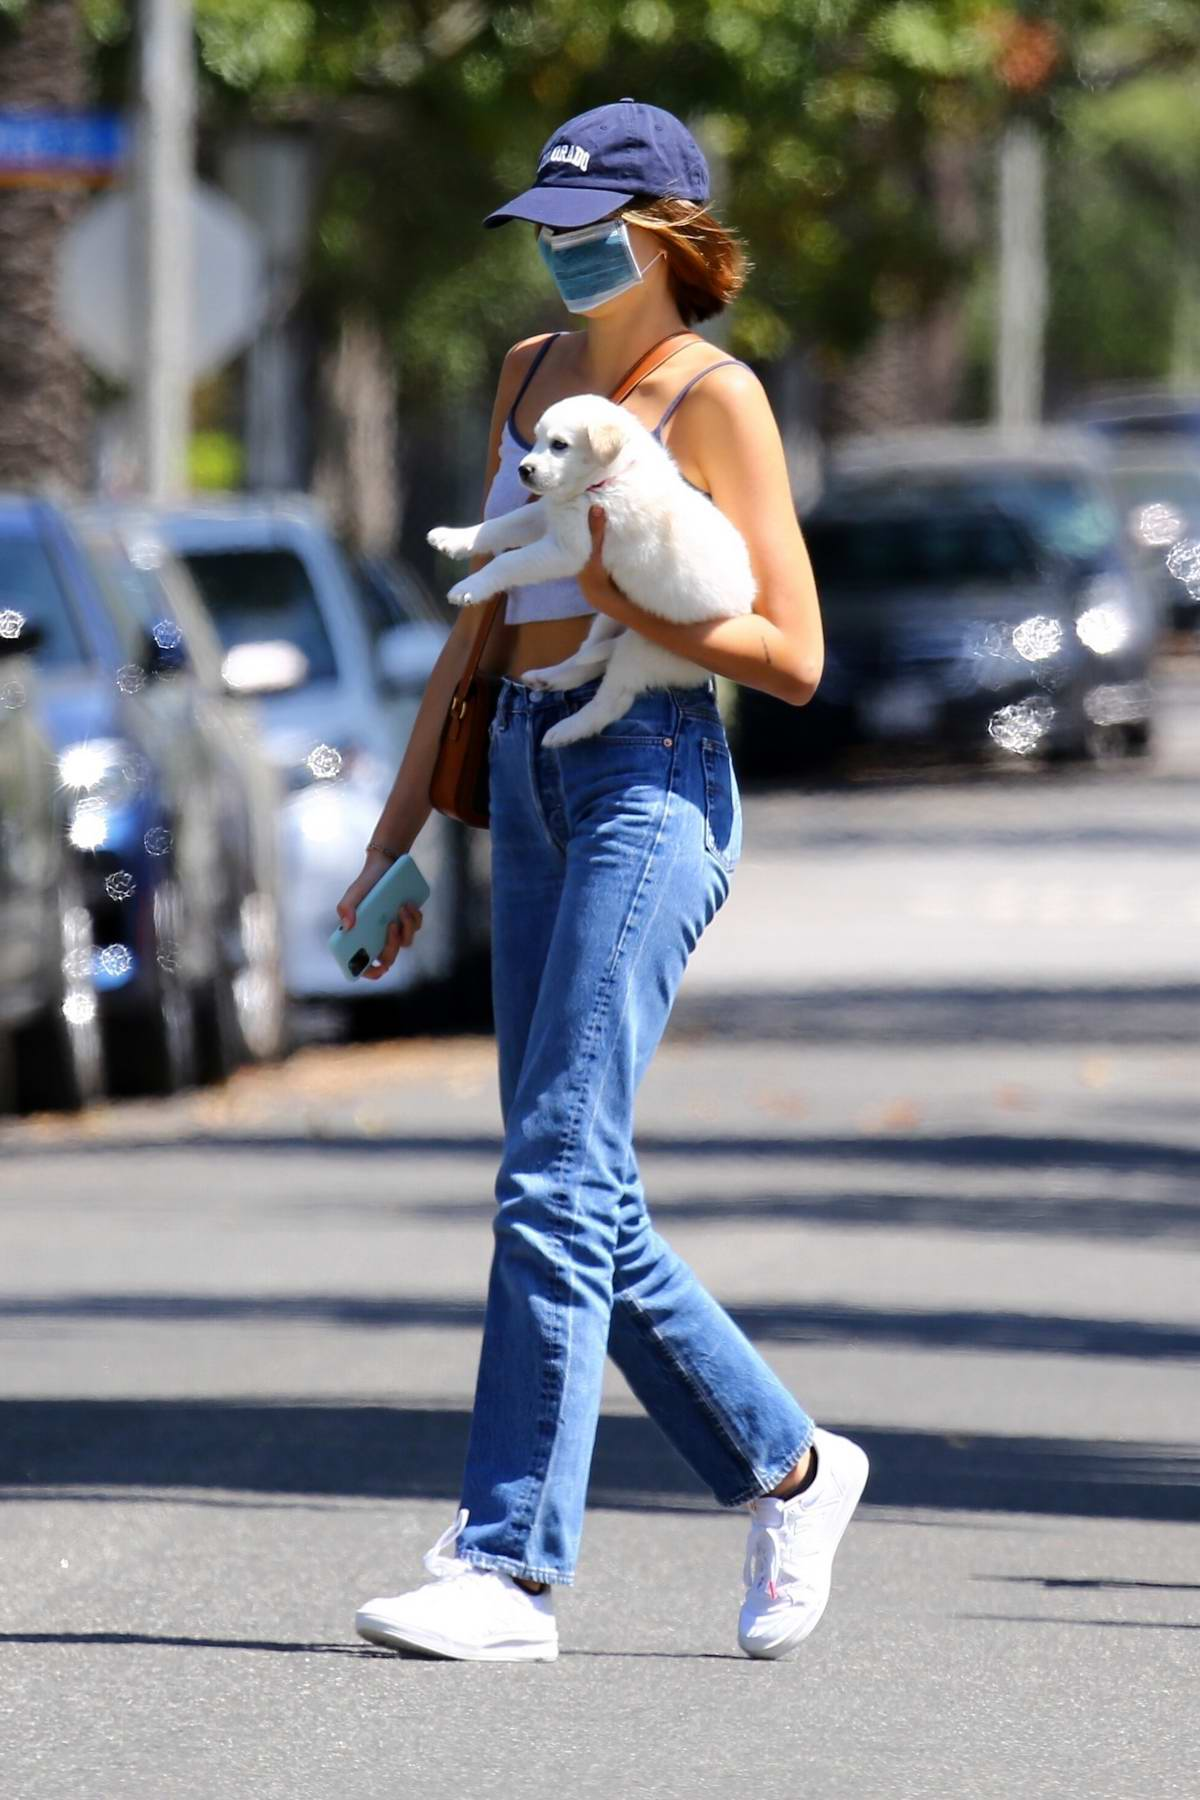 Kaia Gerber and Cindy Crawford seen out with their foster pup in Santa Monica, California